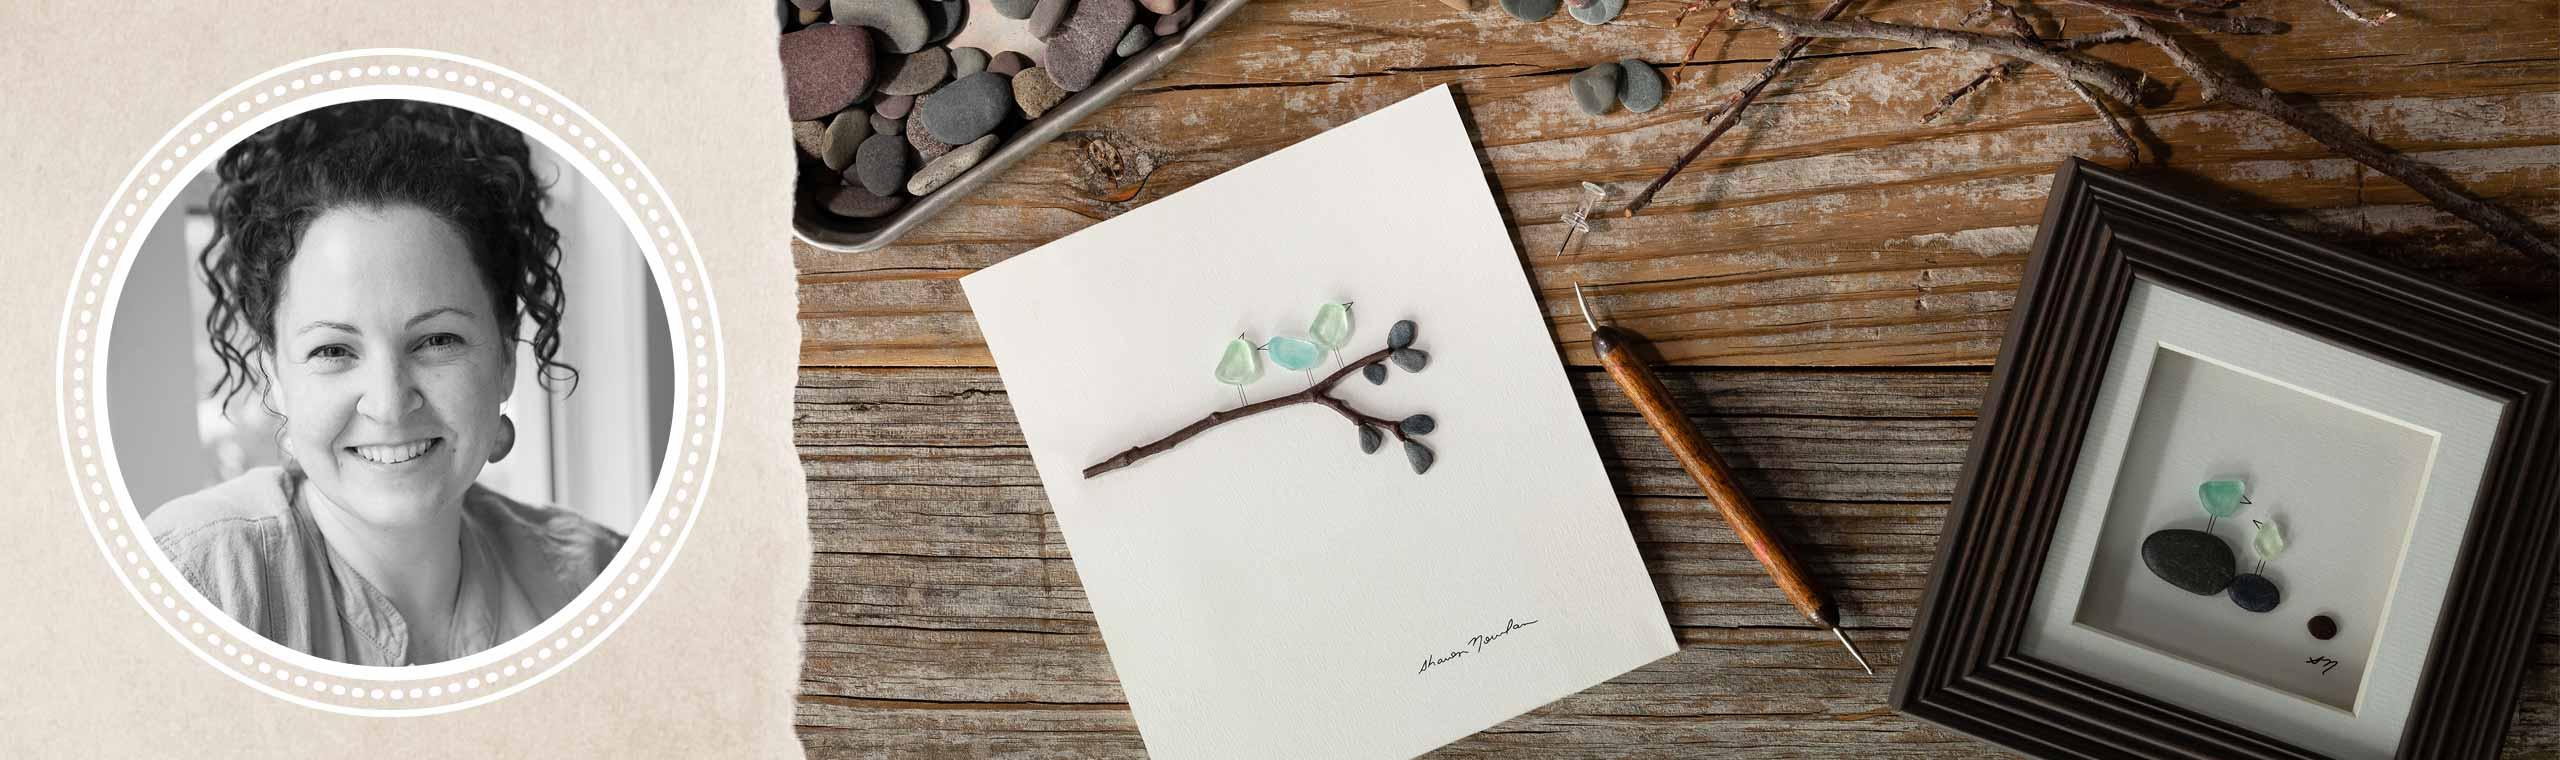 Portrait of artist Sharon Nowlan and artwork being designed with pebbles, sea glass, and sticks on wooden table